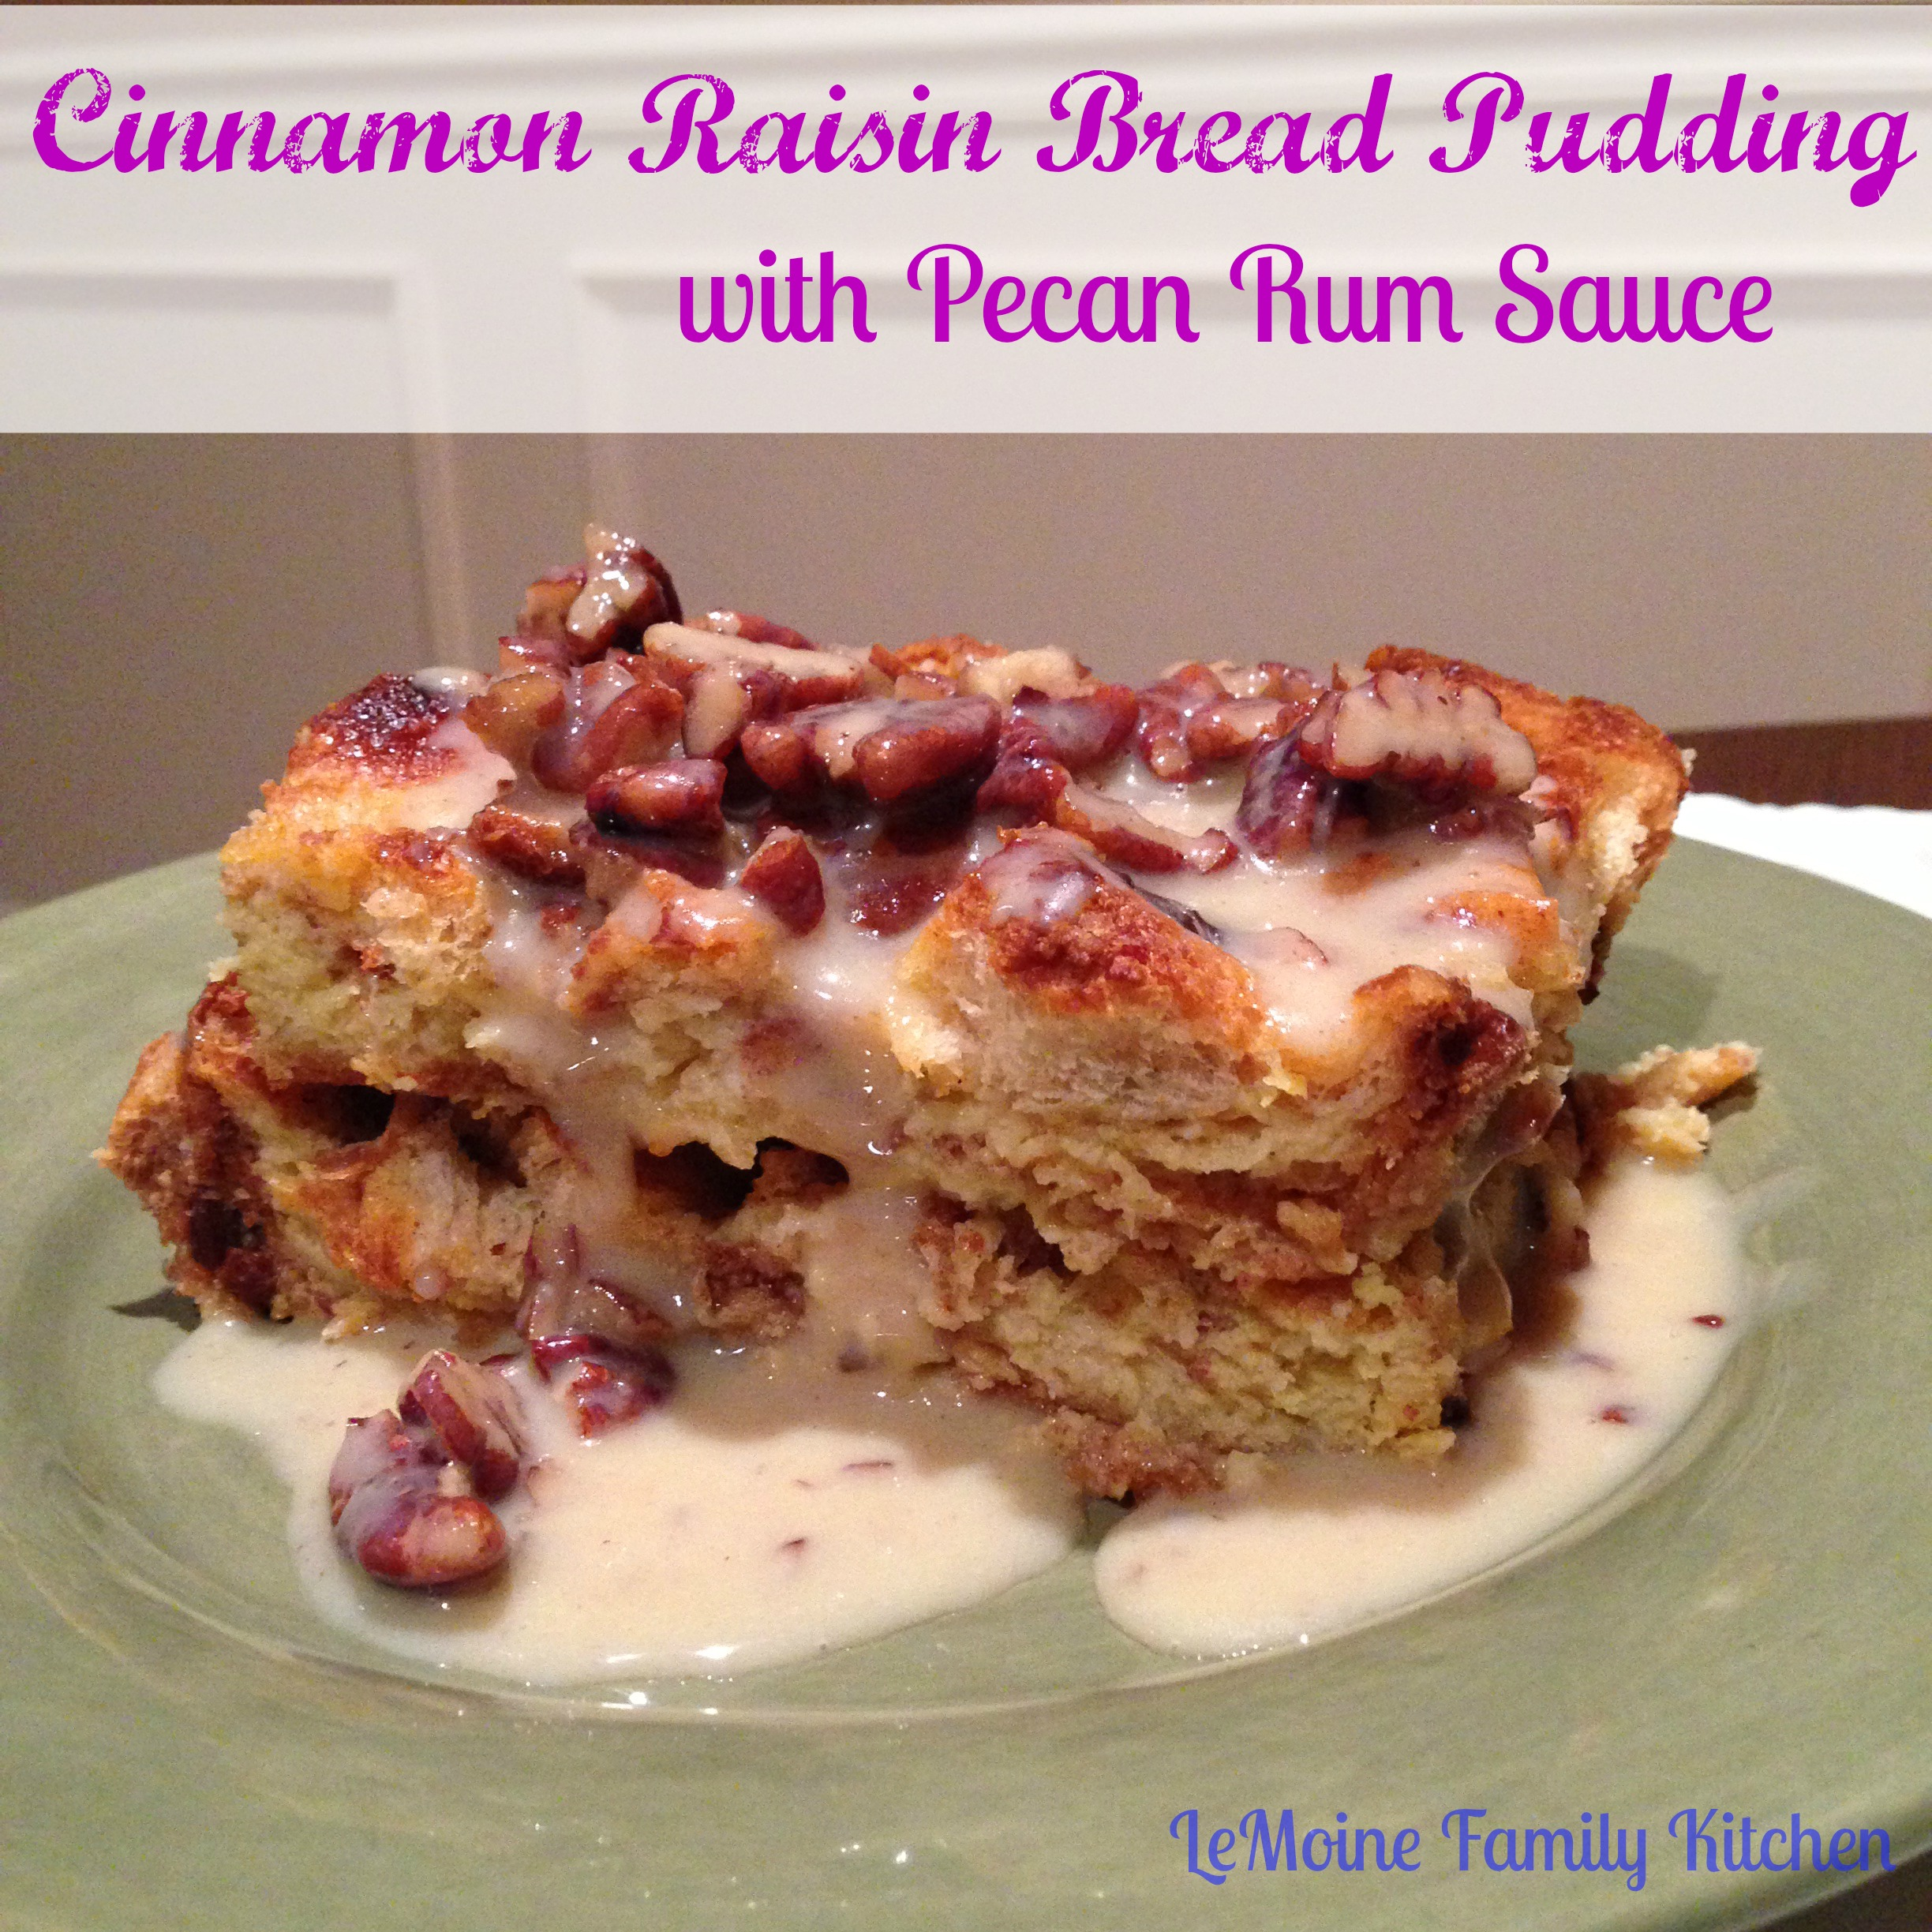 Cinnamon Raisin Bread Pudding with Pecan Rum Sauce